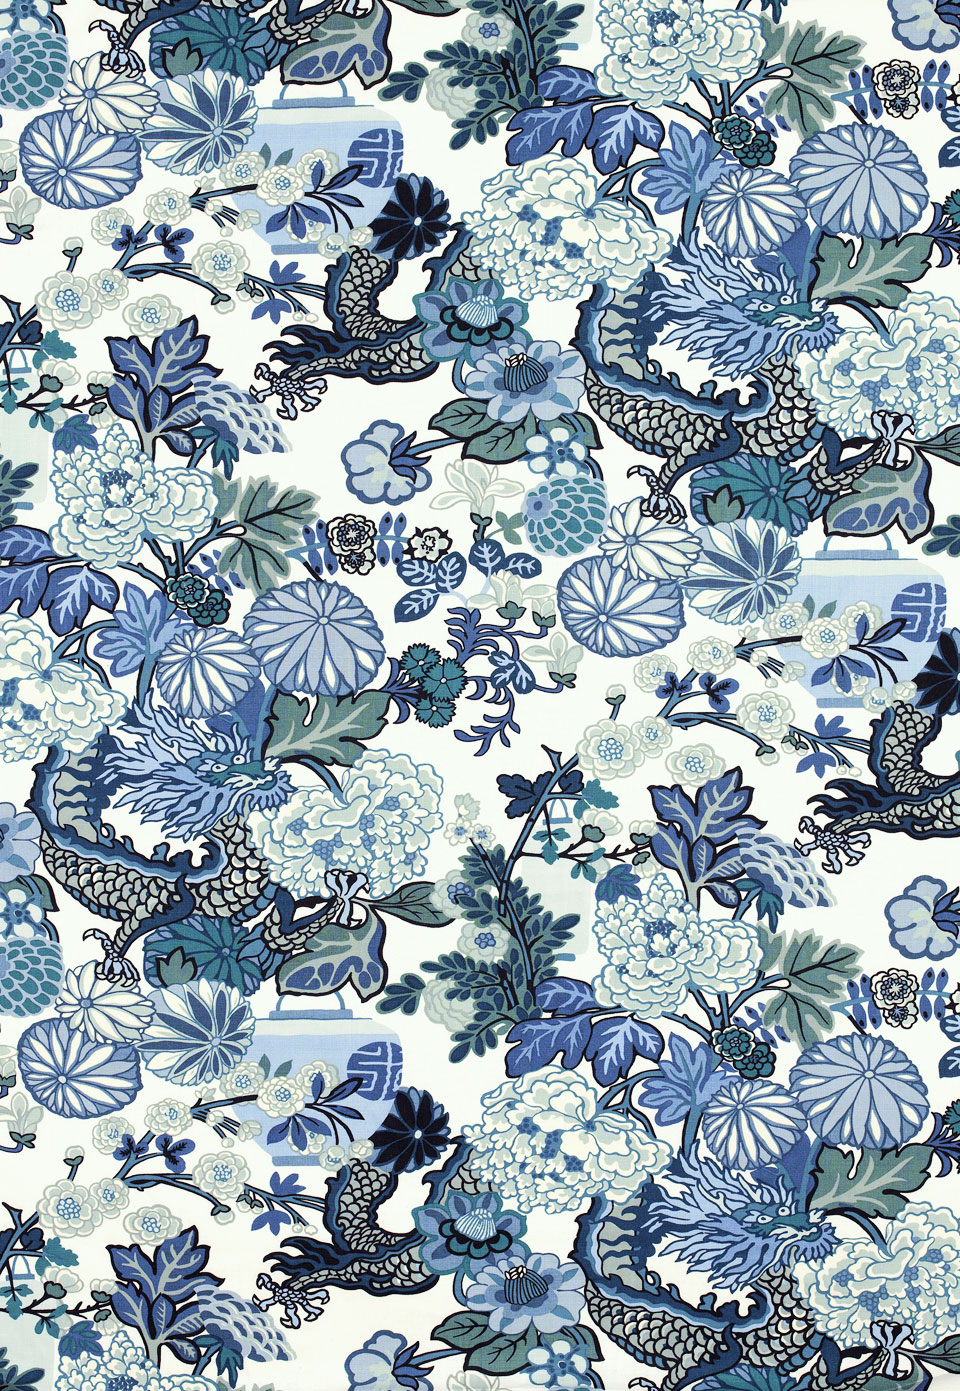 Chinese Fabric Patterns Magnificent Design Ideas